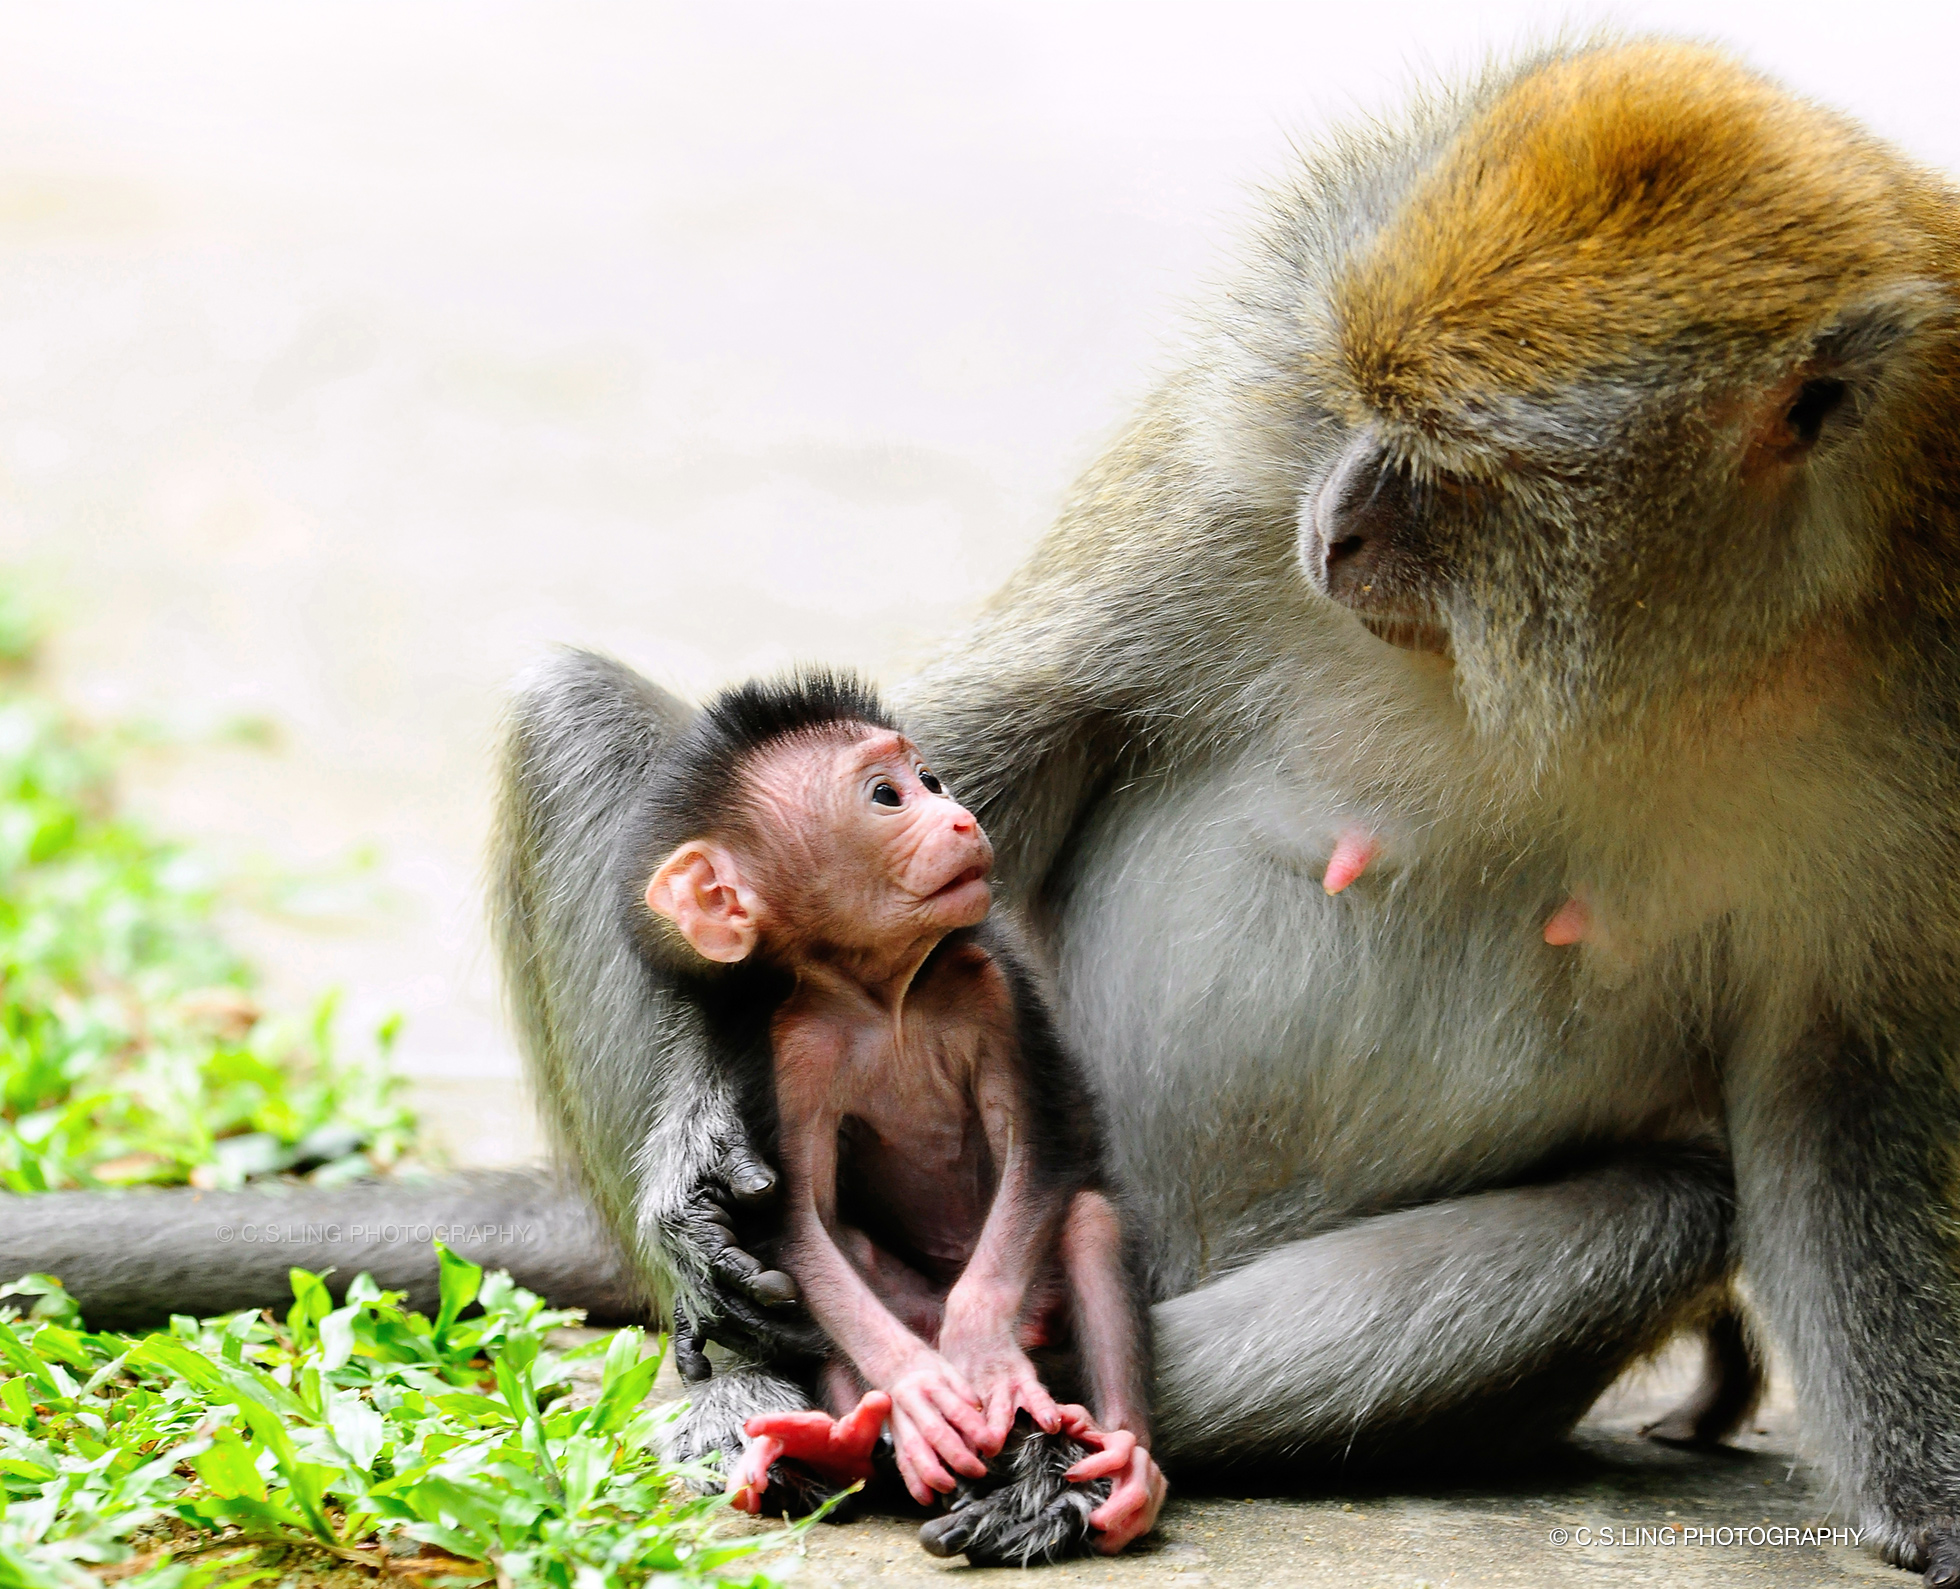 Long-tailed Macaque mother child bonding | Singapore Wildlife Photographer